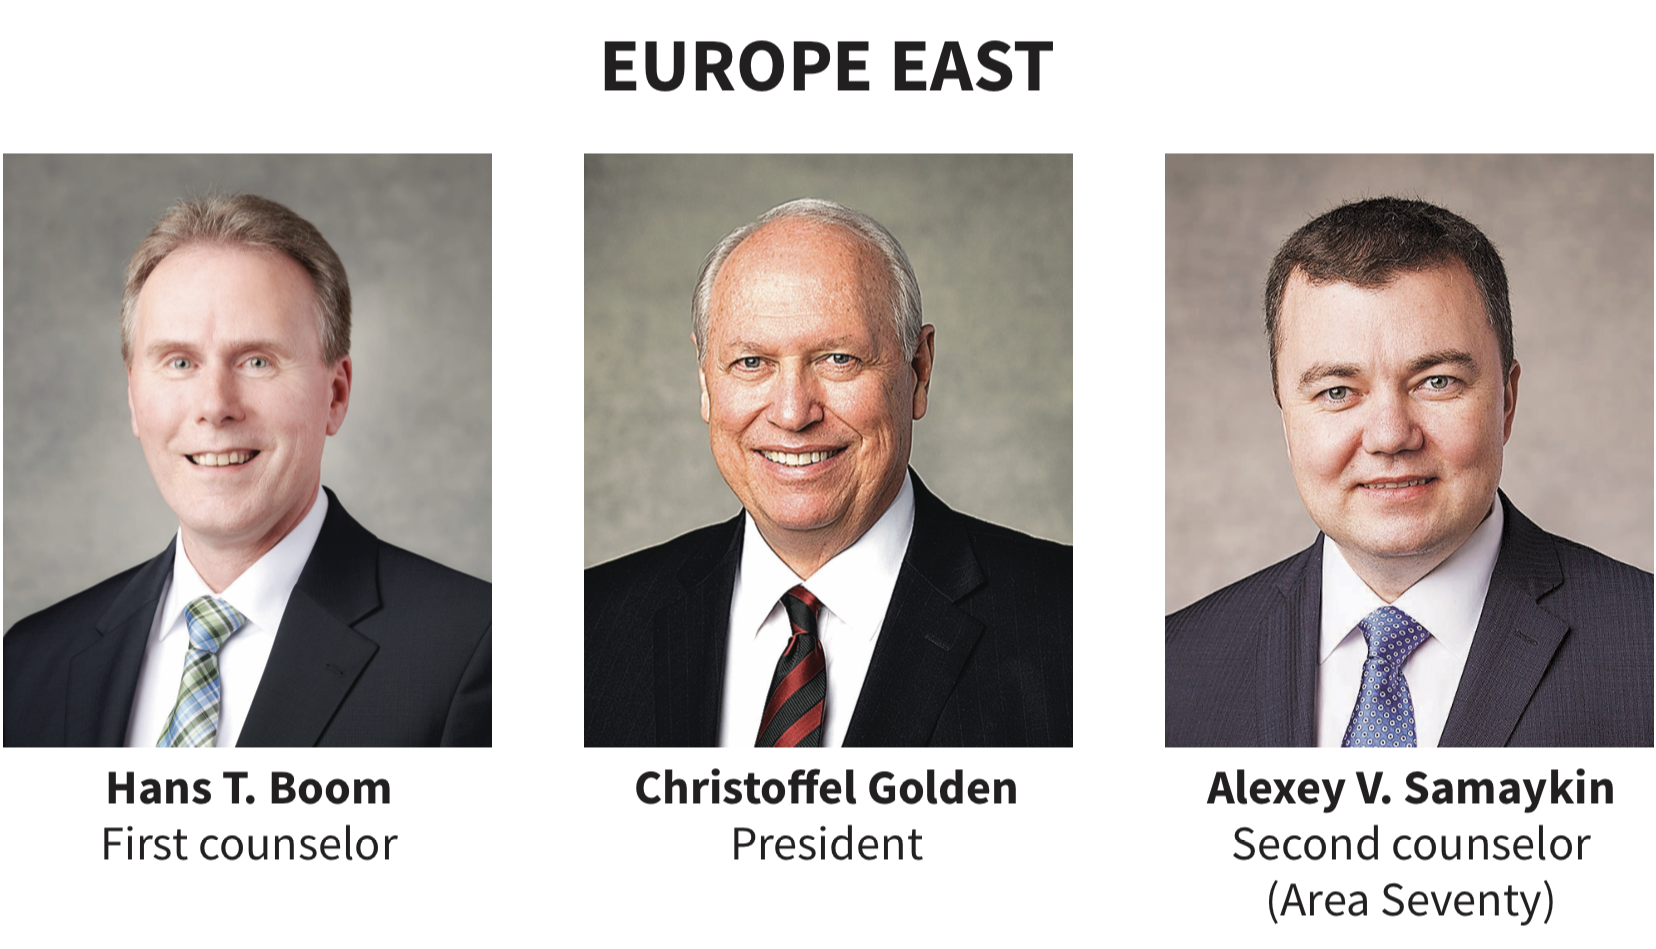 Europe East area presidency